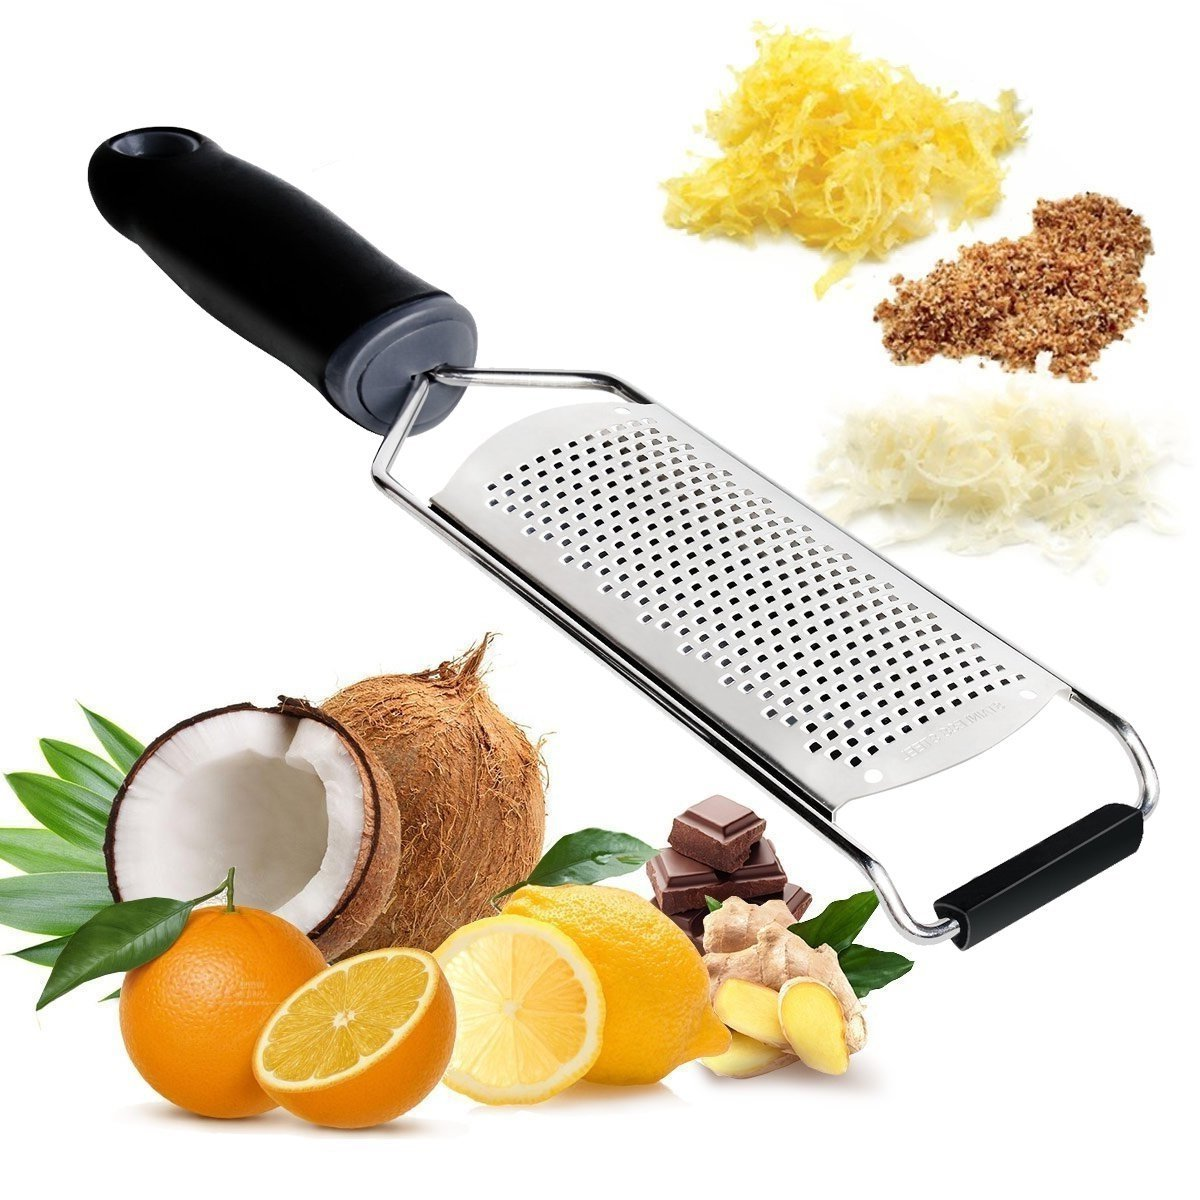 Eastshining 4335496706 Cheese Grater Zester with Protective Cover Professional Razor Sharp Blades Ideal for Kitchen Vegetable Chocolate Fruit Fine Zesting Supreme Stainless Black